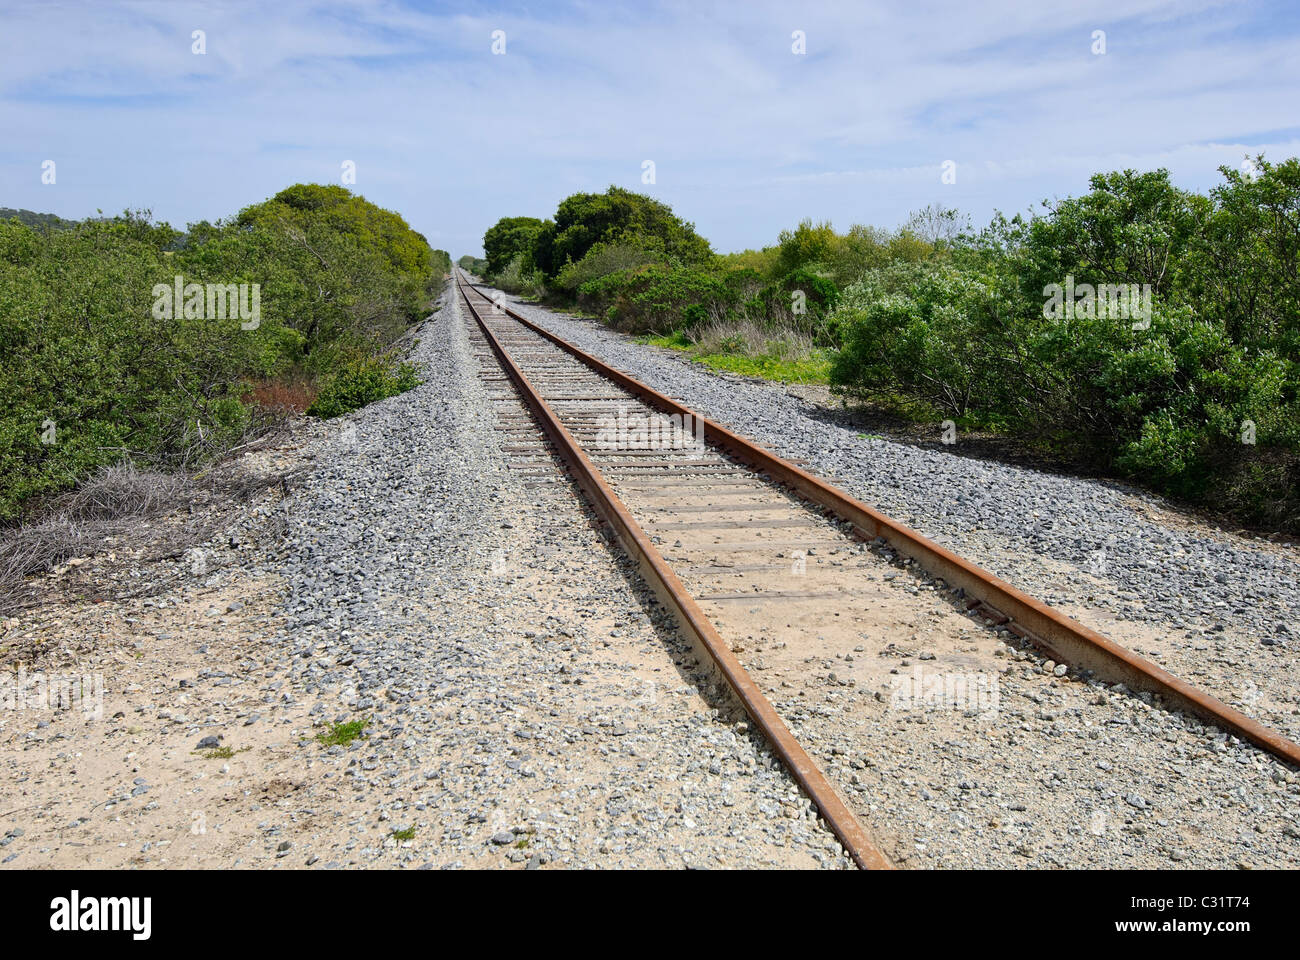 Old train tracks located in Wilder Ranch State Park. - Stock Image